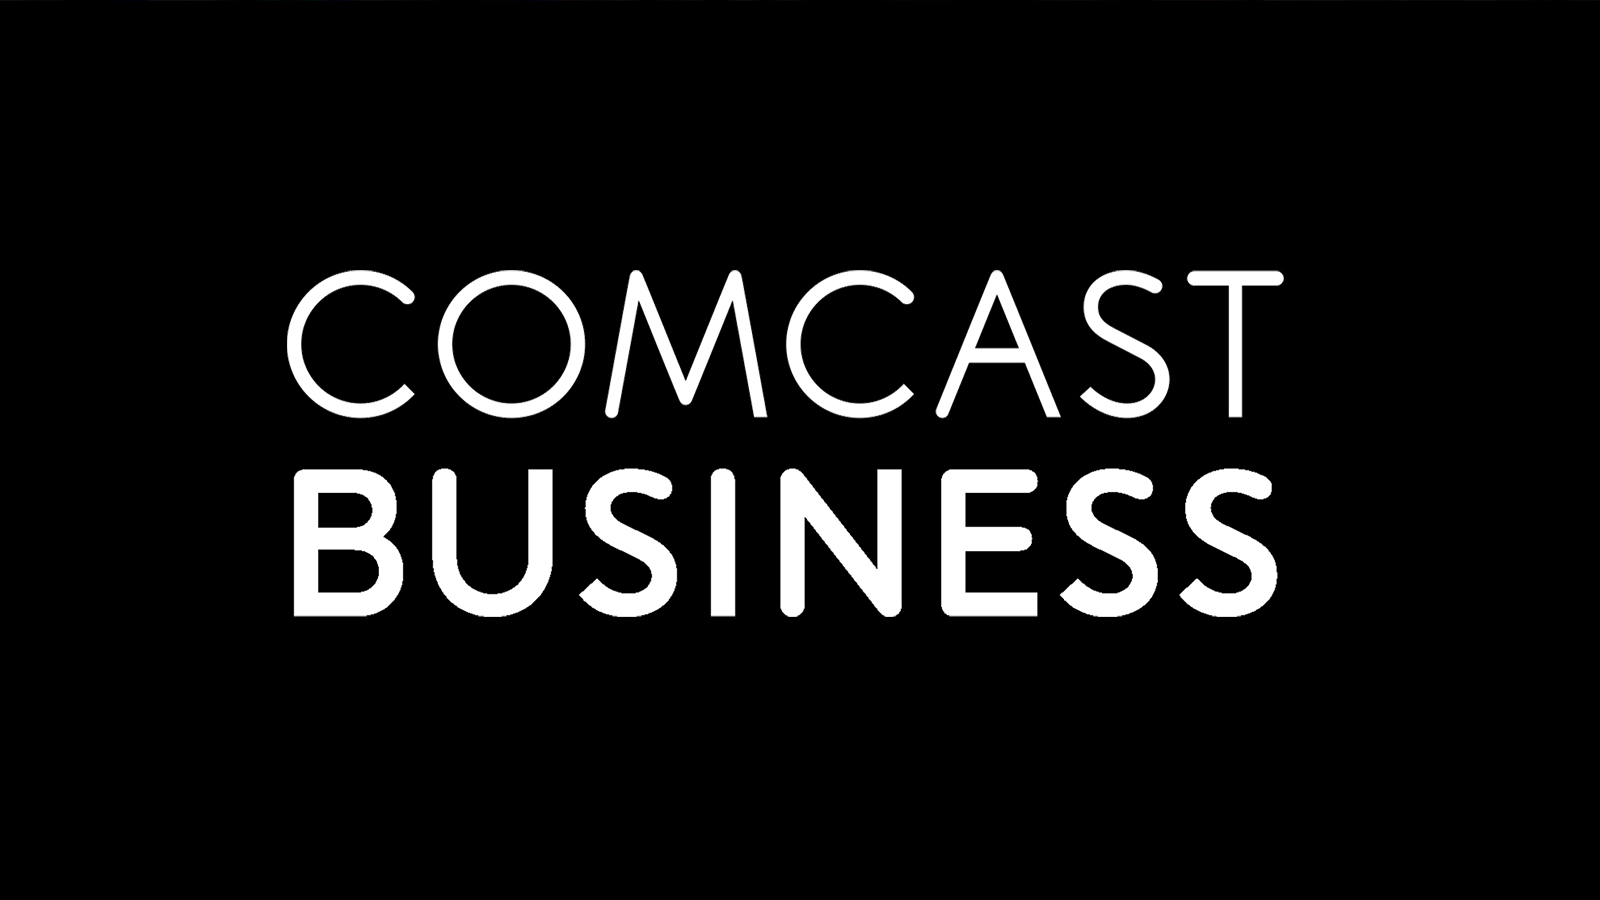 The Comcast Business logo.